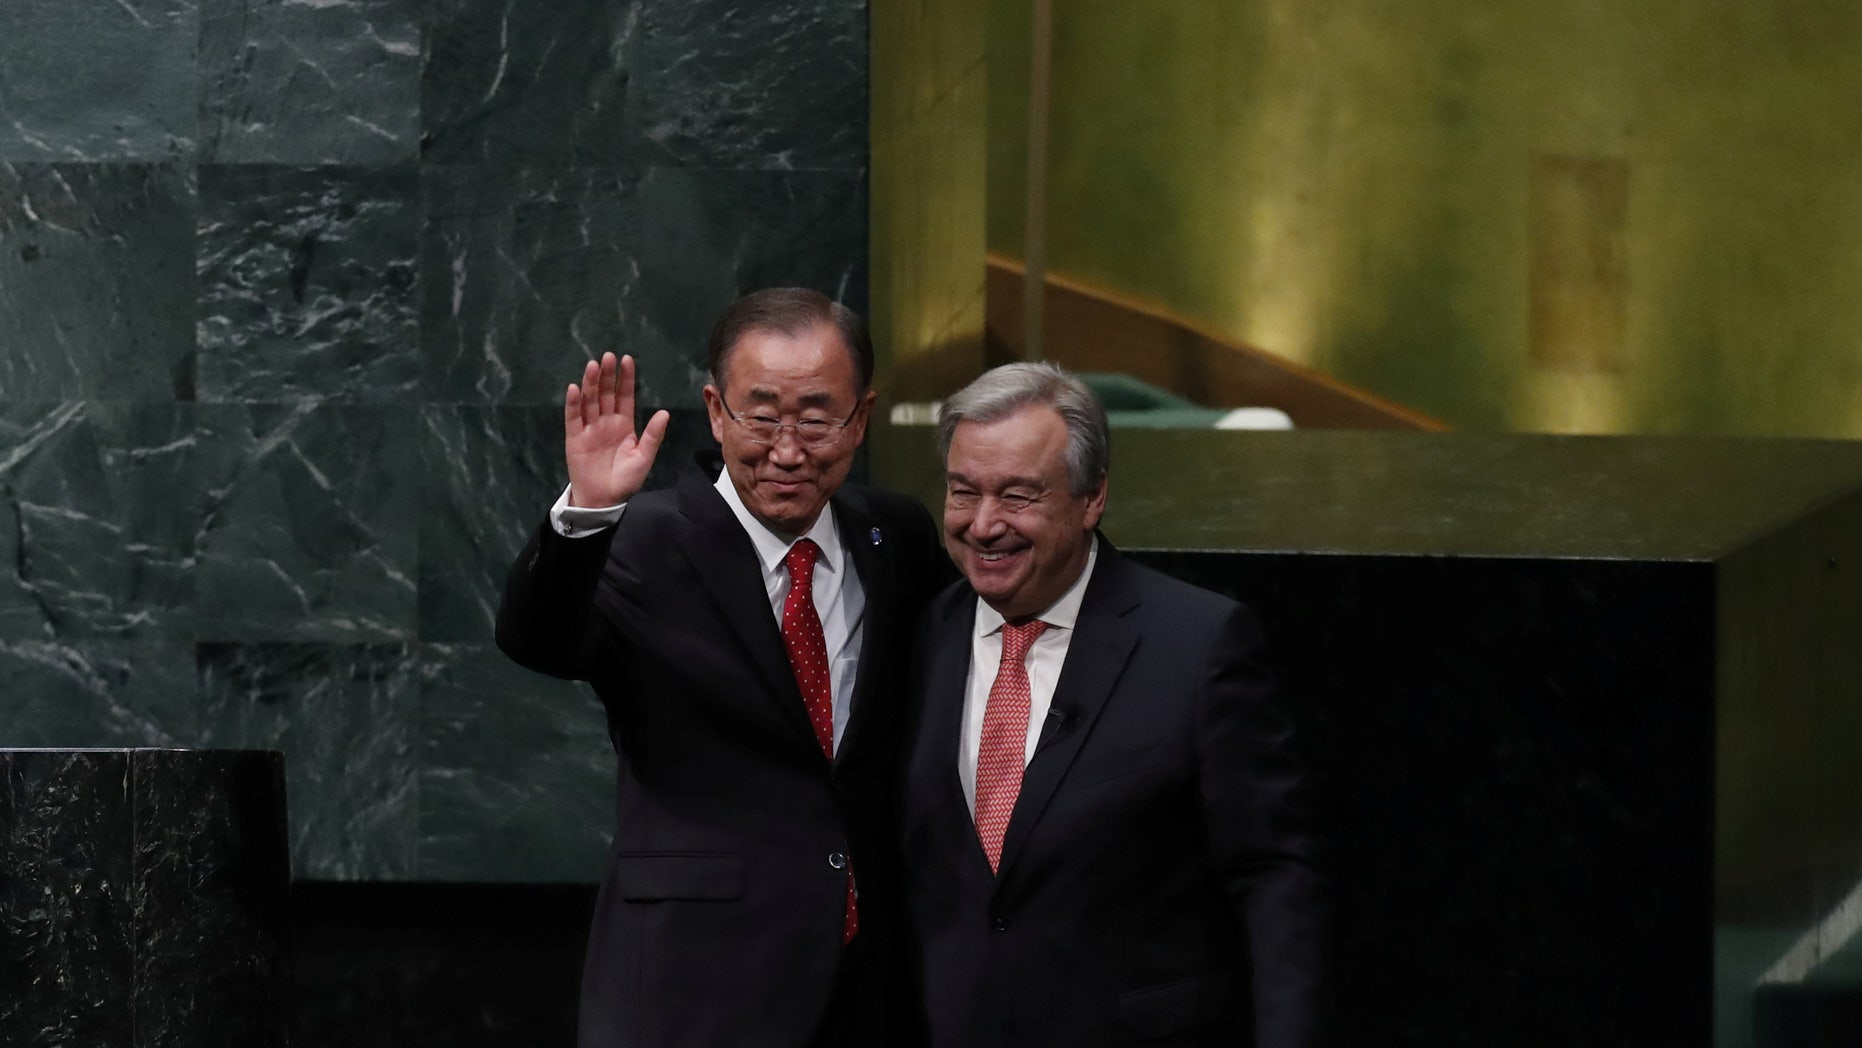 Outgoing United Nations Secretary-General Ban Ki-moon, left, with Antonio Guterres after the swearing-in ceremony.